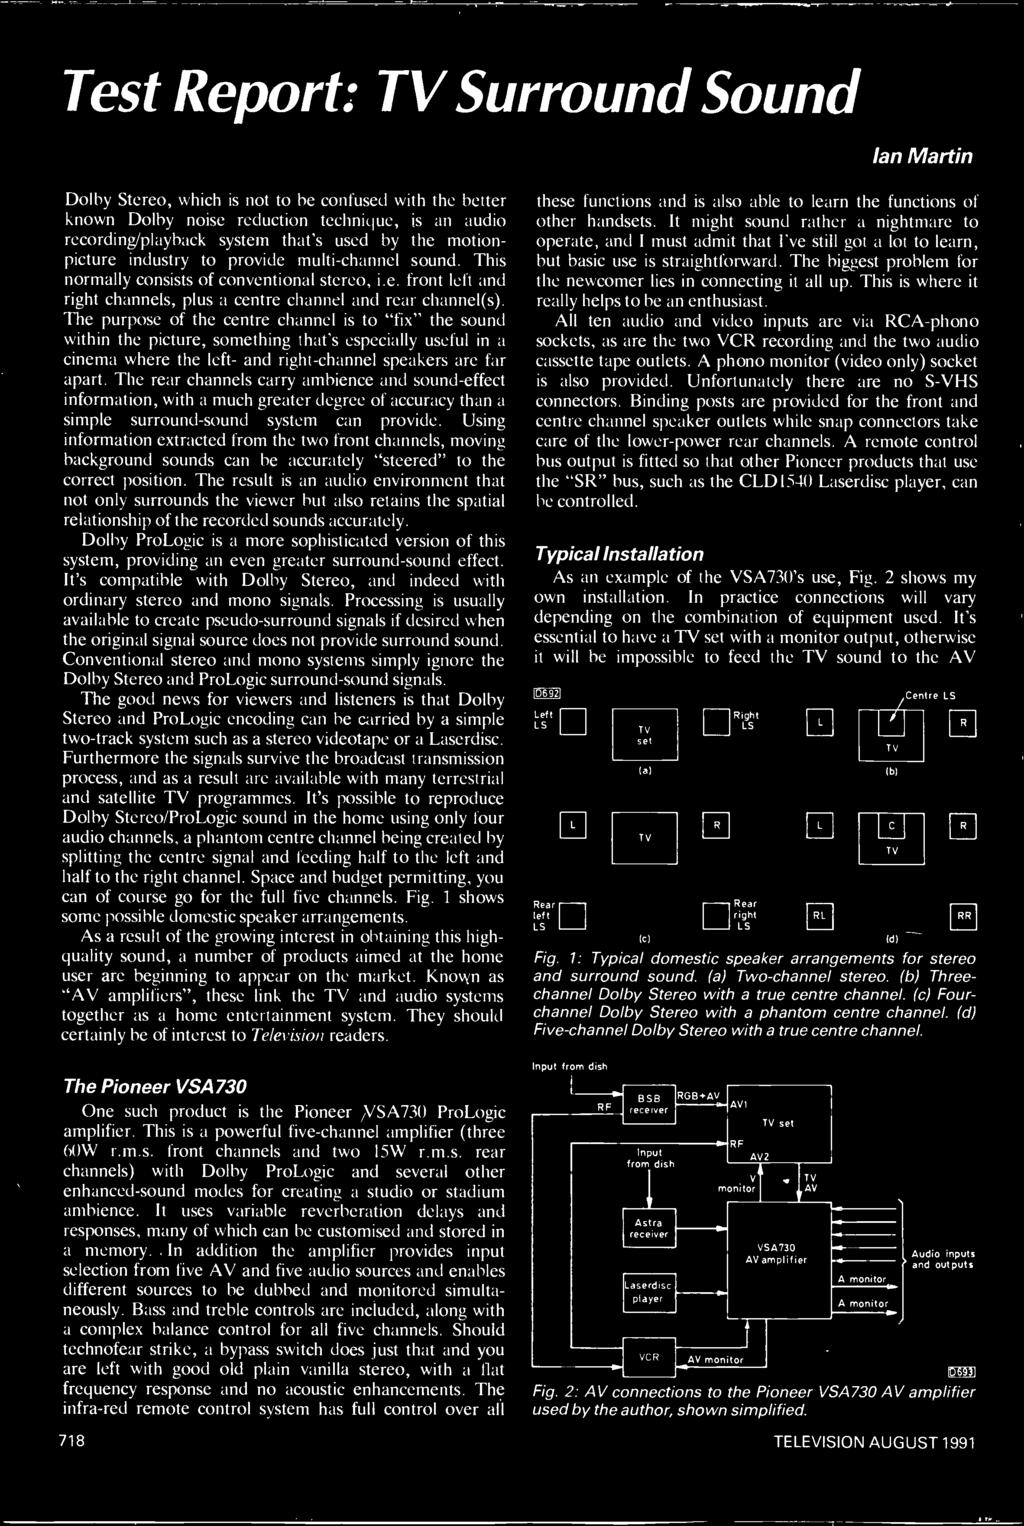 Tfieuision Servicingprwectsvideodevelopments Free 16 Page Catalogue Schematic Audio Power Amplifier With Ic An7106k Using Information Extracted From The Two Front Channels Moving Background Sounds Can Be Accurately